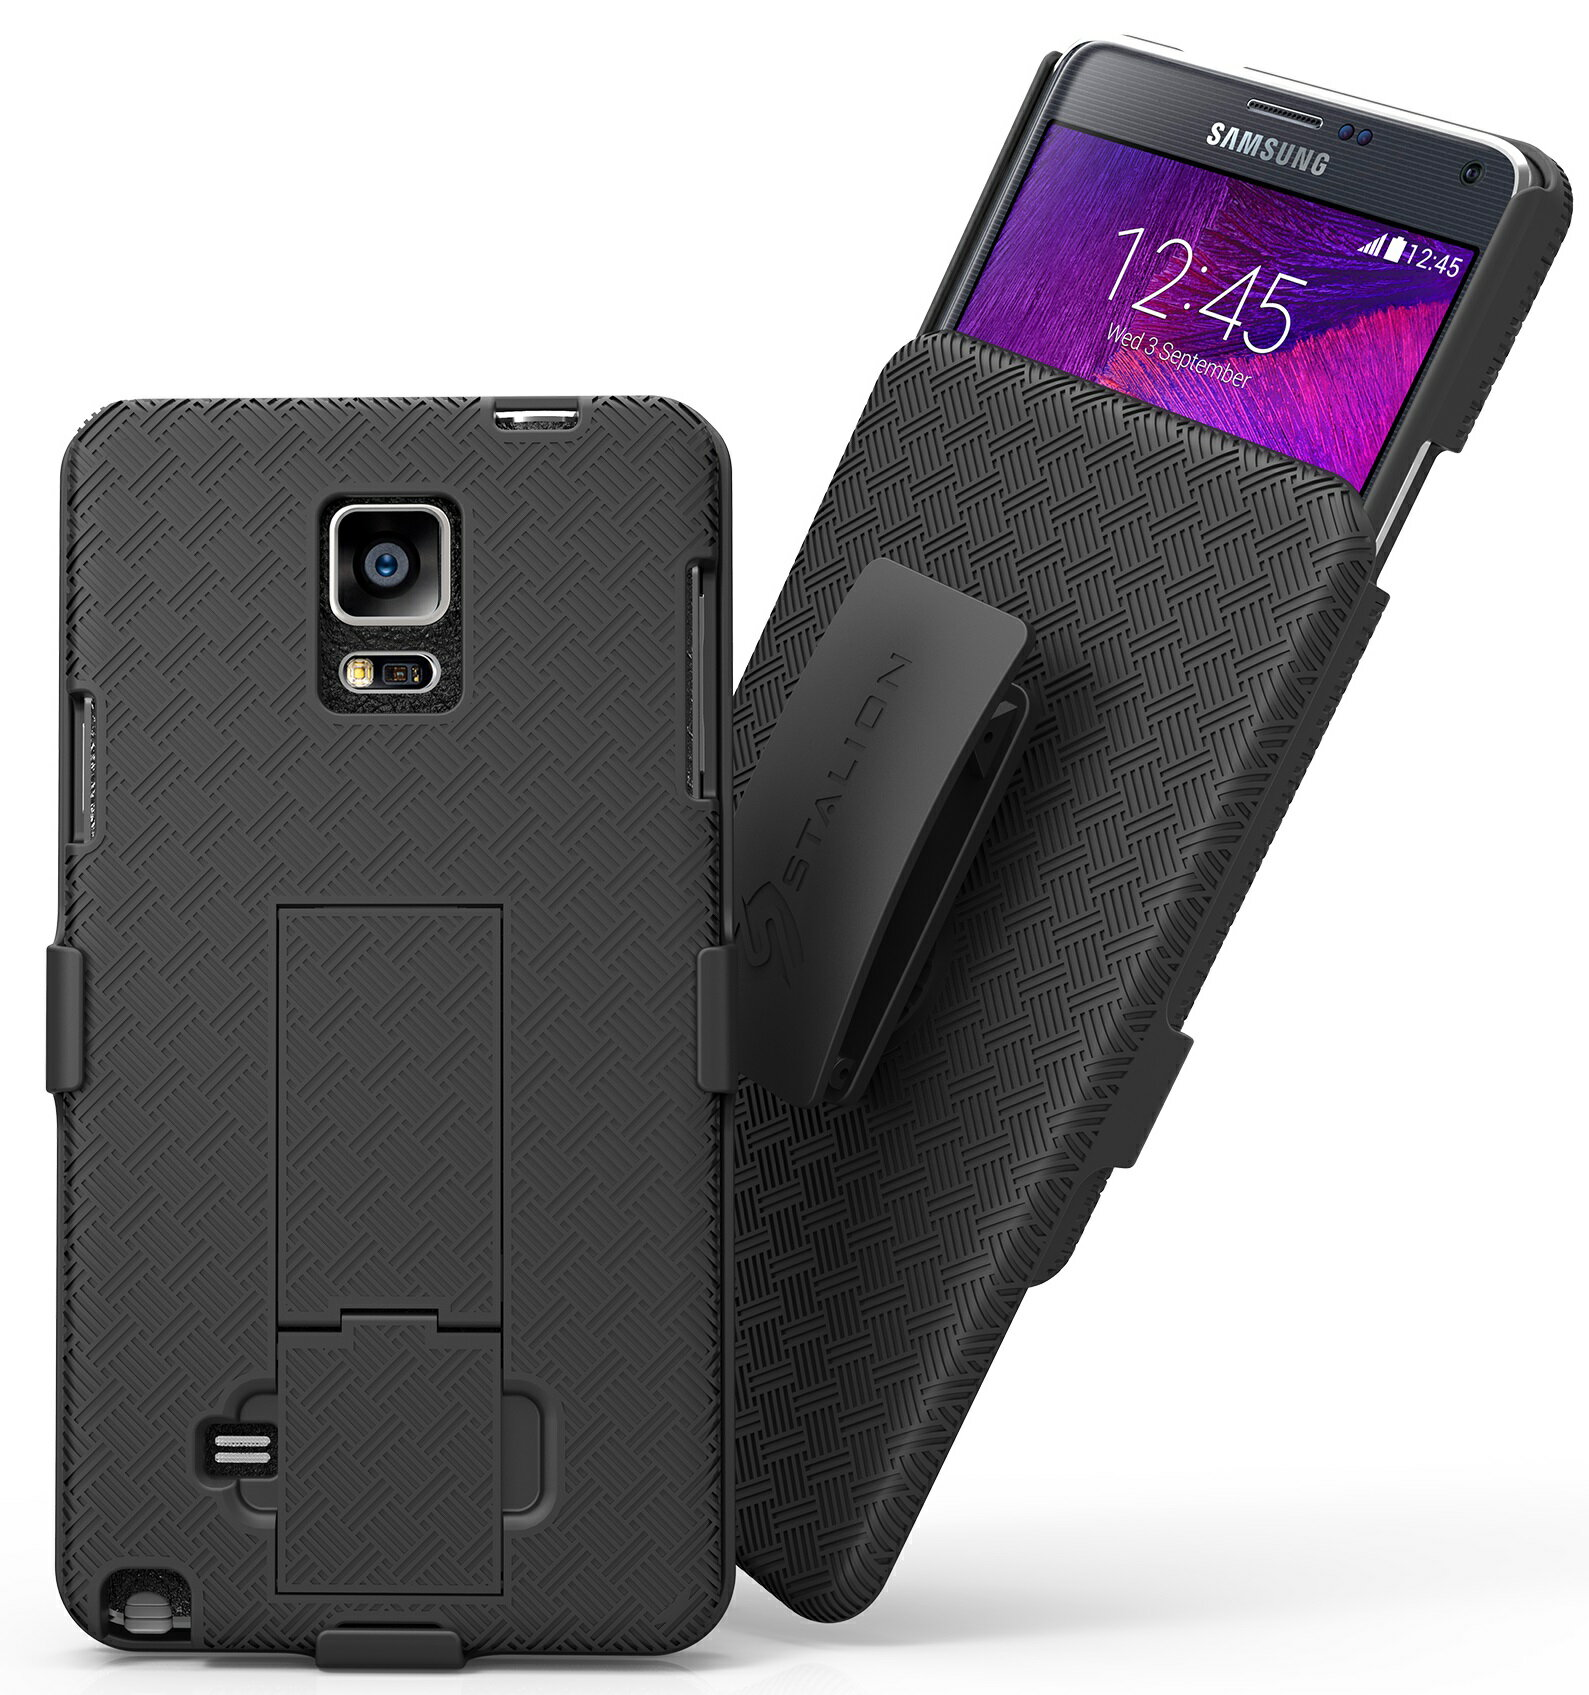 new concept 2cde4 21295 Samsung Galaxy Note 4 Holster Case & Belt Clip Combo